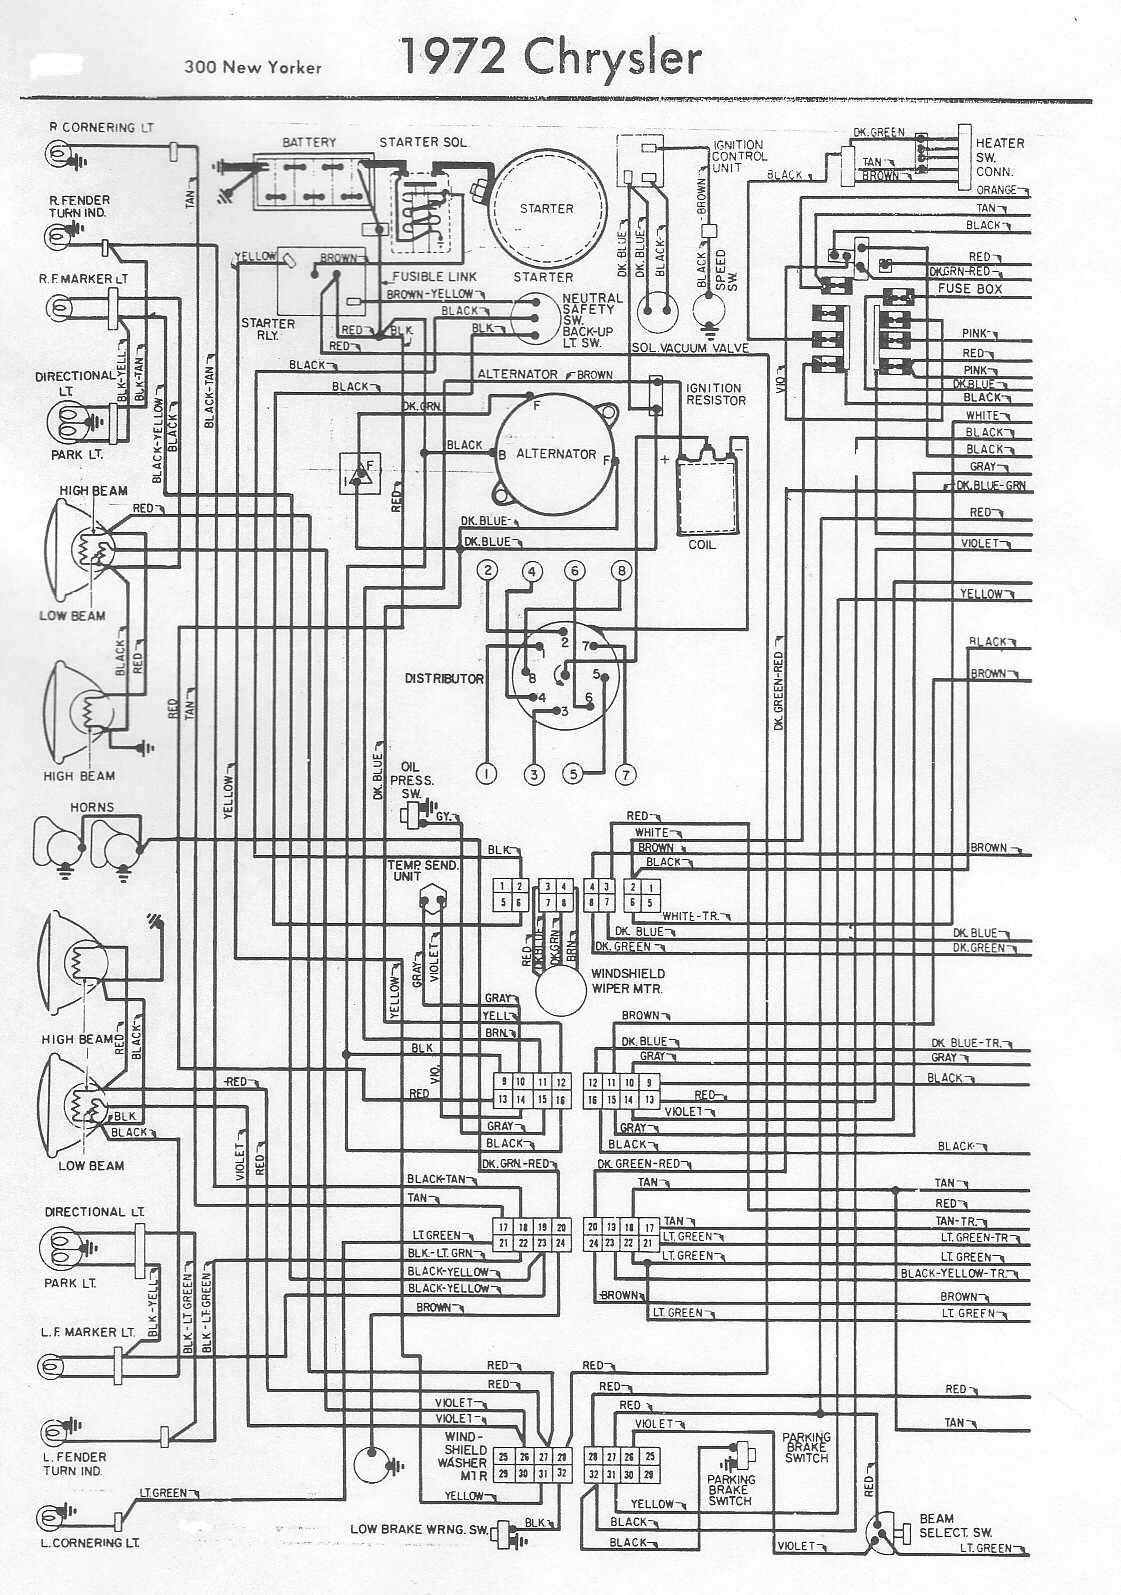 small resolution of 2006 cadillac wiring diagrams wiring library 2008 dodge dakota electrical schematic 1956 cadillac wiring diagram simple